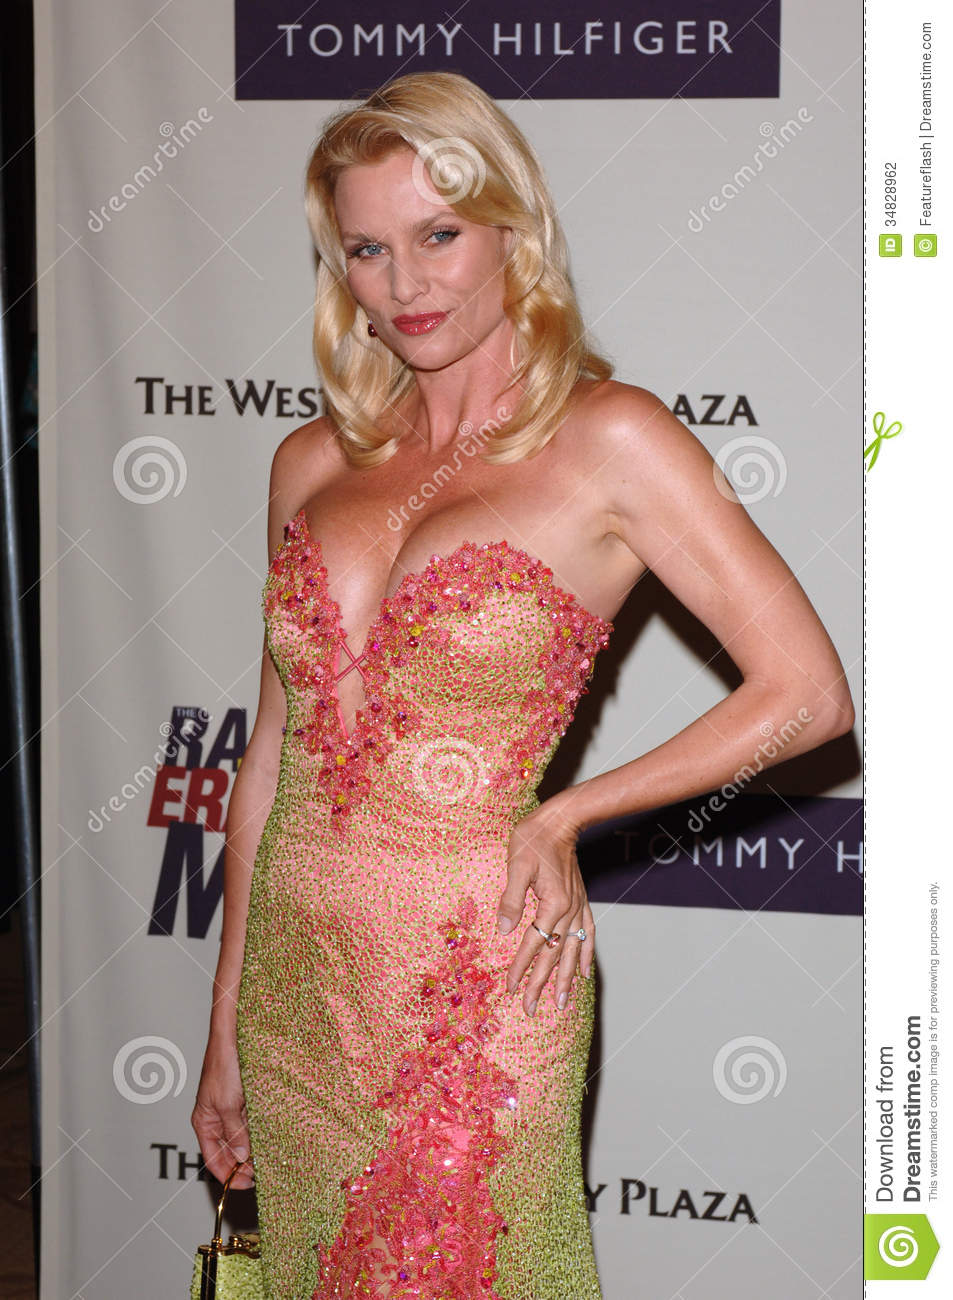 nicollette sheridan desperate housewives lawsuitnicollette sheridan 2016, nicollette sheridan age, nicollette sheridan instagram, nicollette sheridan 2017, nicollette sheridan interview, nicollette sheridan the sure thing, nicollette sheridan photo, nicollette sheridan desperate housewives lawsuit, nicollette sheridan 2015, nicollette sheridan net worth, nicollette sheridan twitter, nicollette sheridan imdb, nicollette sheridan 2014, nicollette sheridan desperate housewives, nicollette sheridan facebook